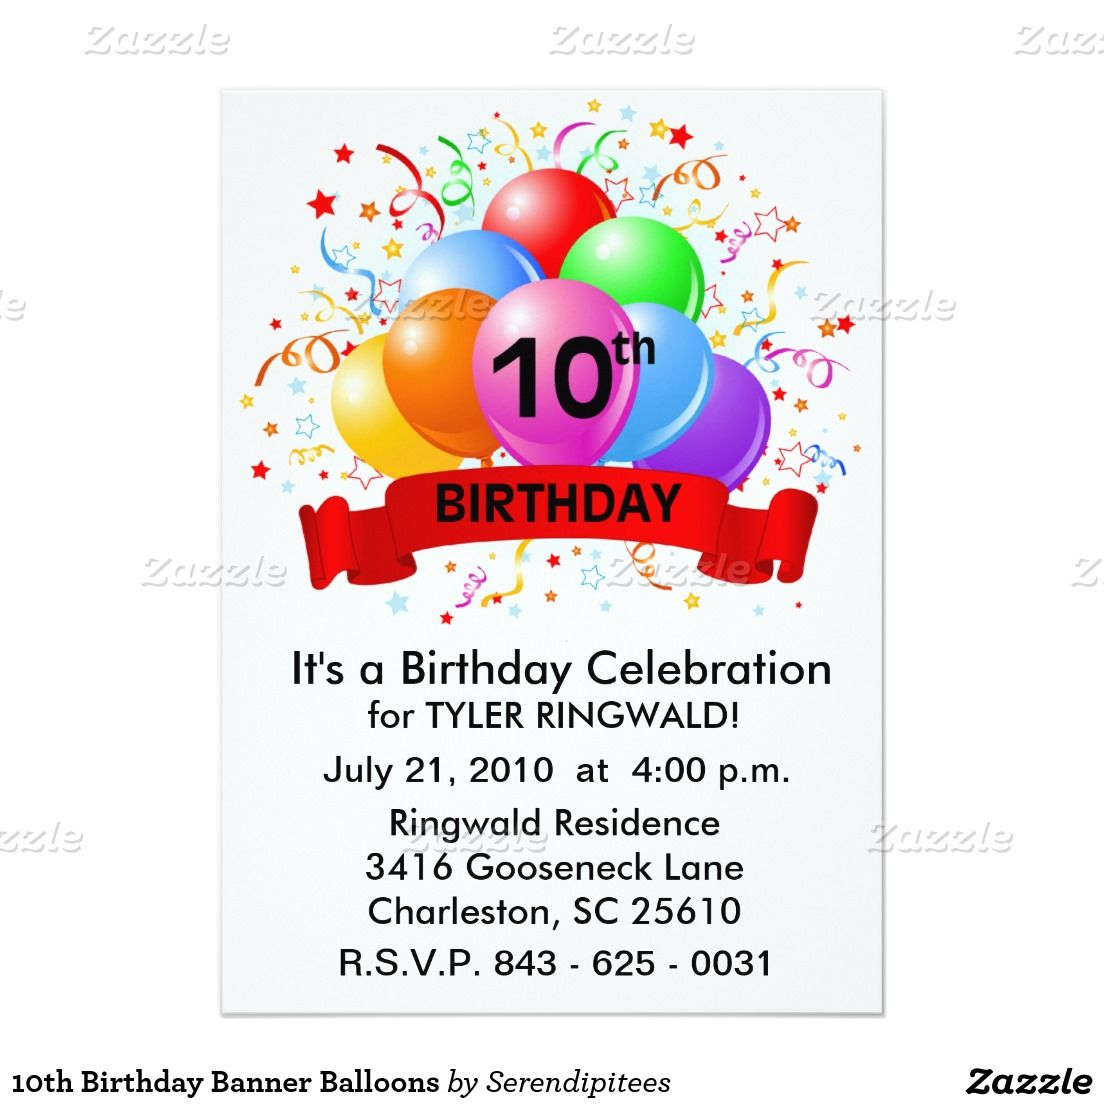 10th birthday banner balloons invitation pinterest balloon 10th birthday banner balloons 13 cm x 18 cm invitation card filmwisefo